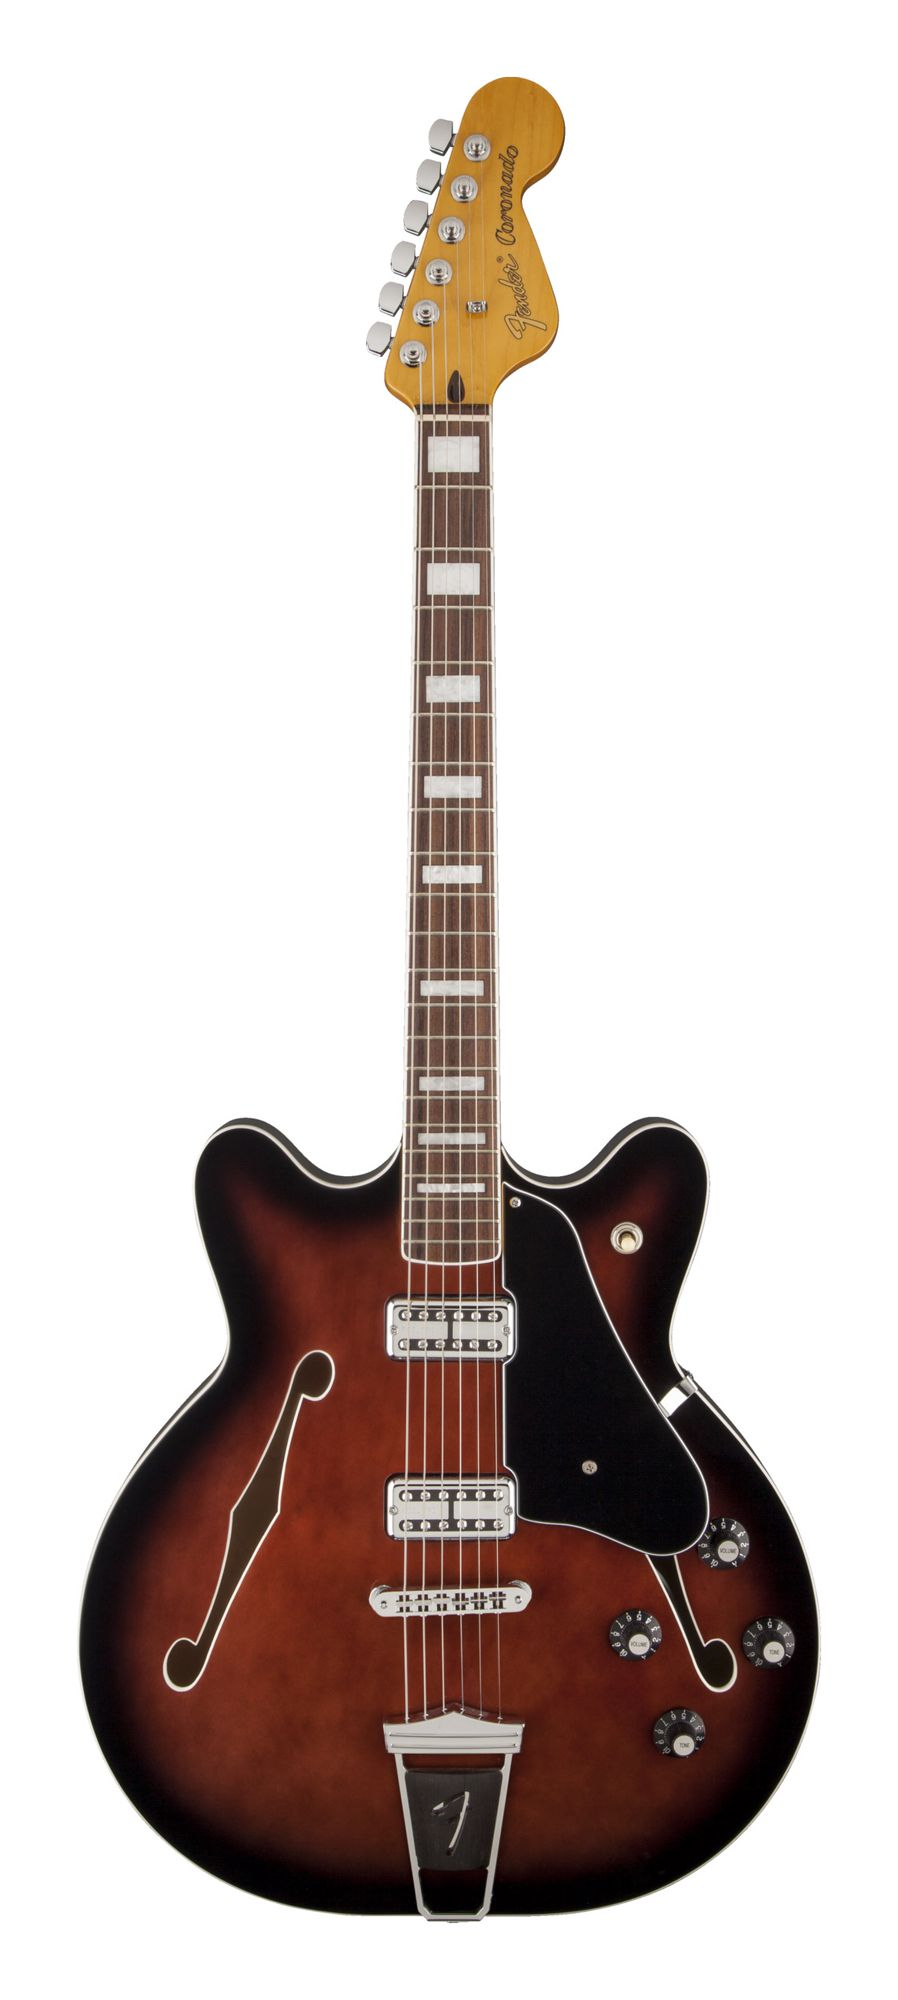 Fender Modern Player Coronado - Black Cherry Burst